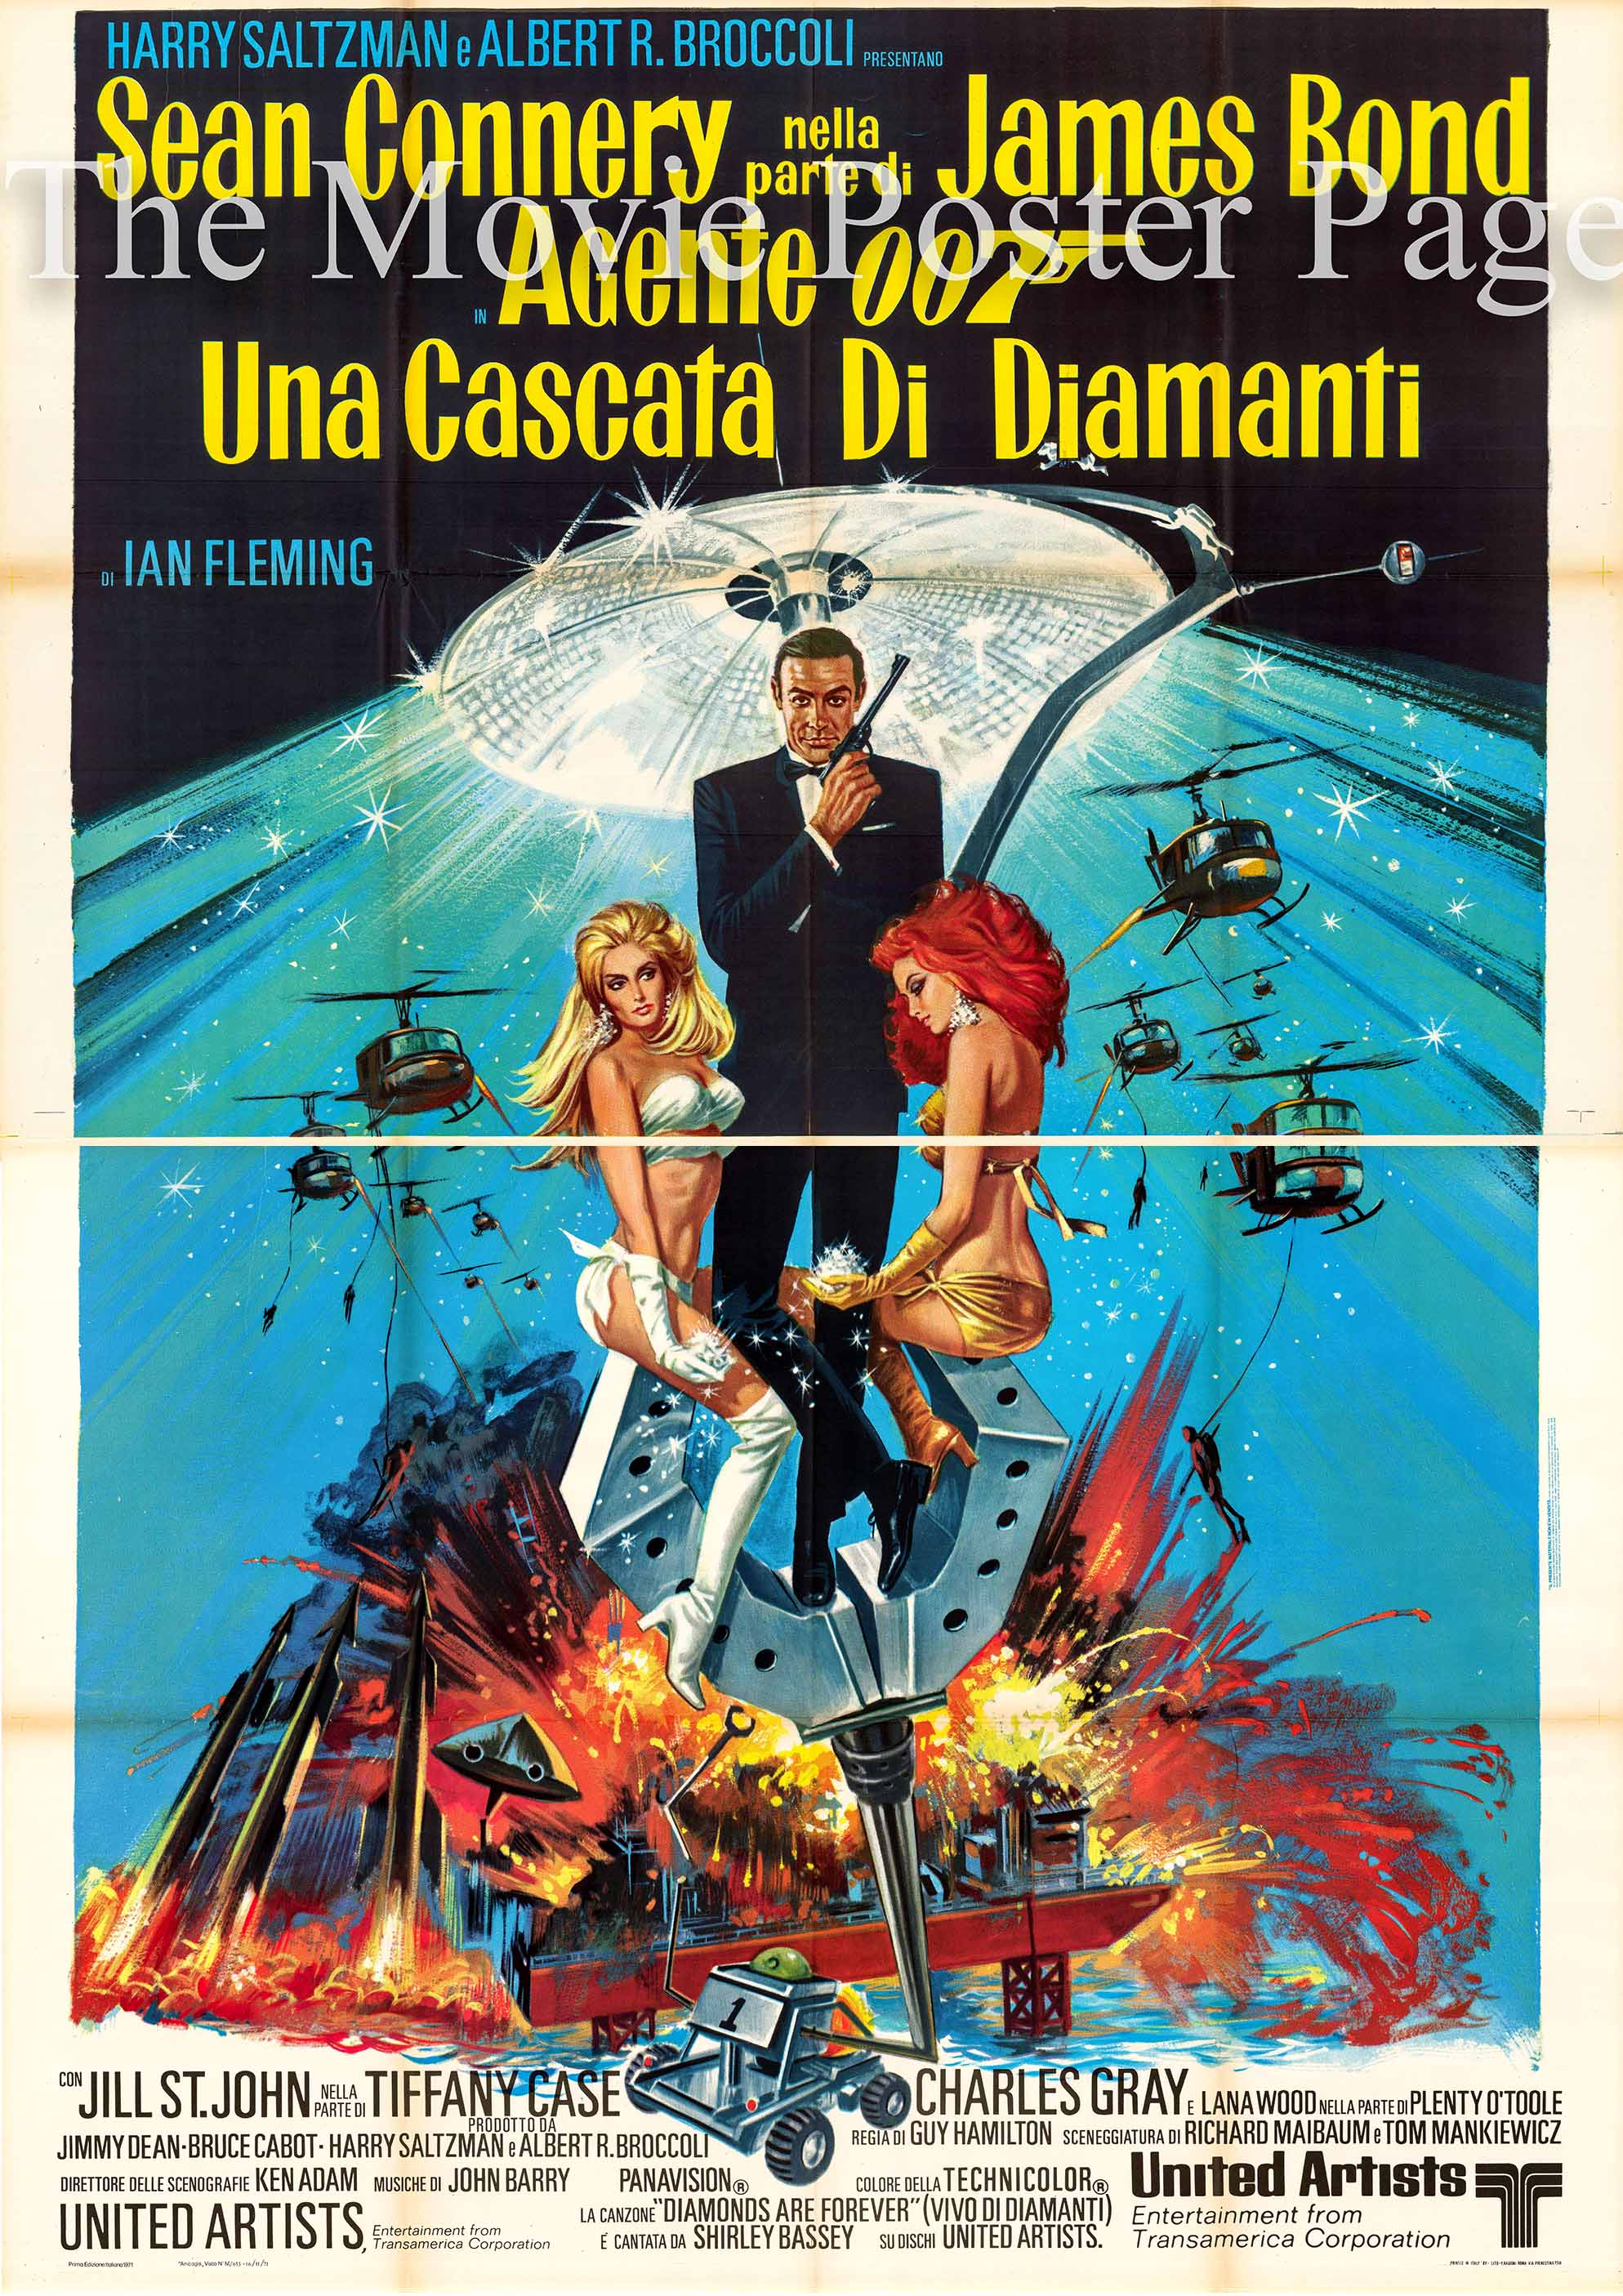 Pictured here is an Italian 4-sheet poster made to promote the 1971 Guy Hamilton film Diamonds are Forever starring Sean Connery.